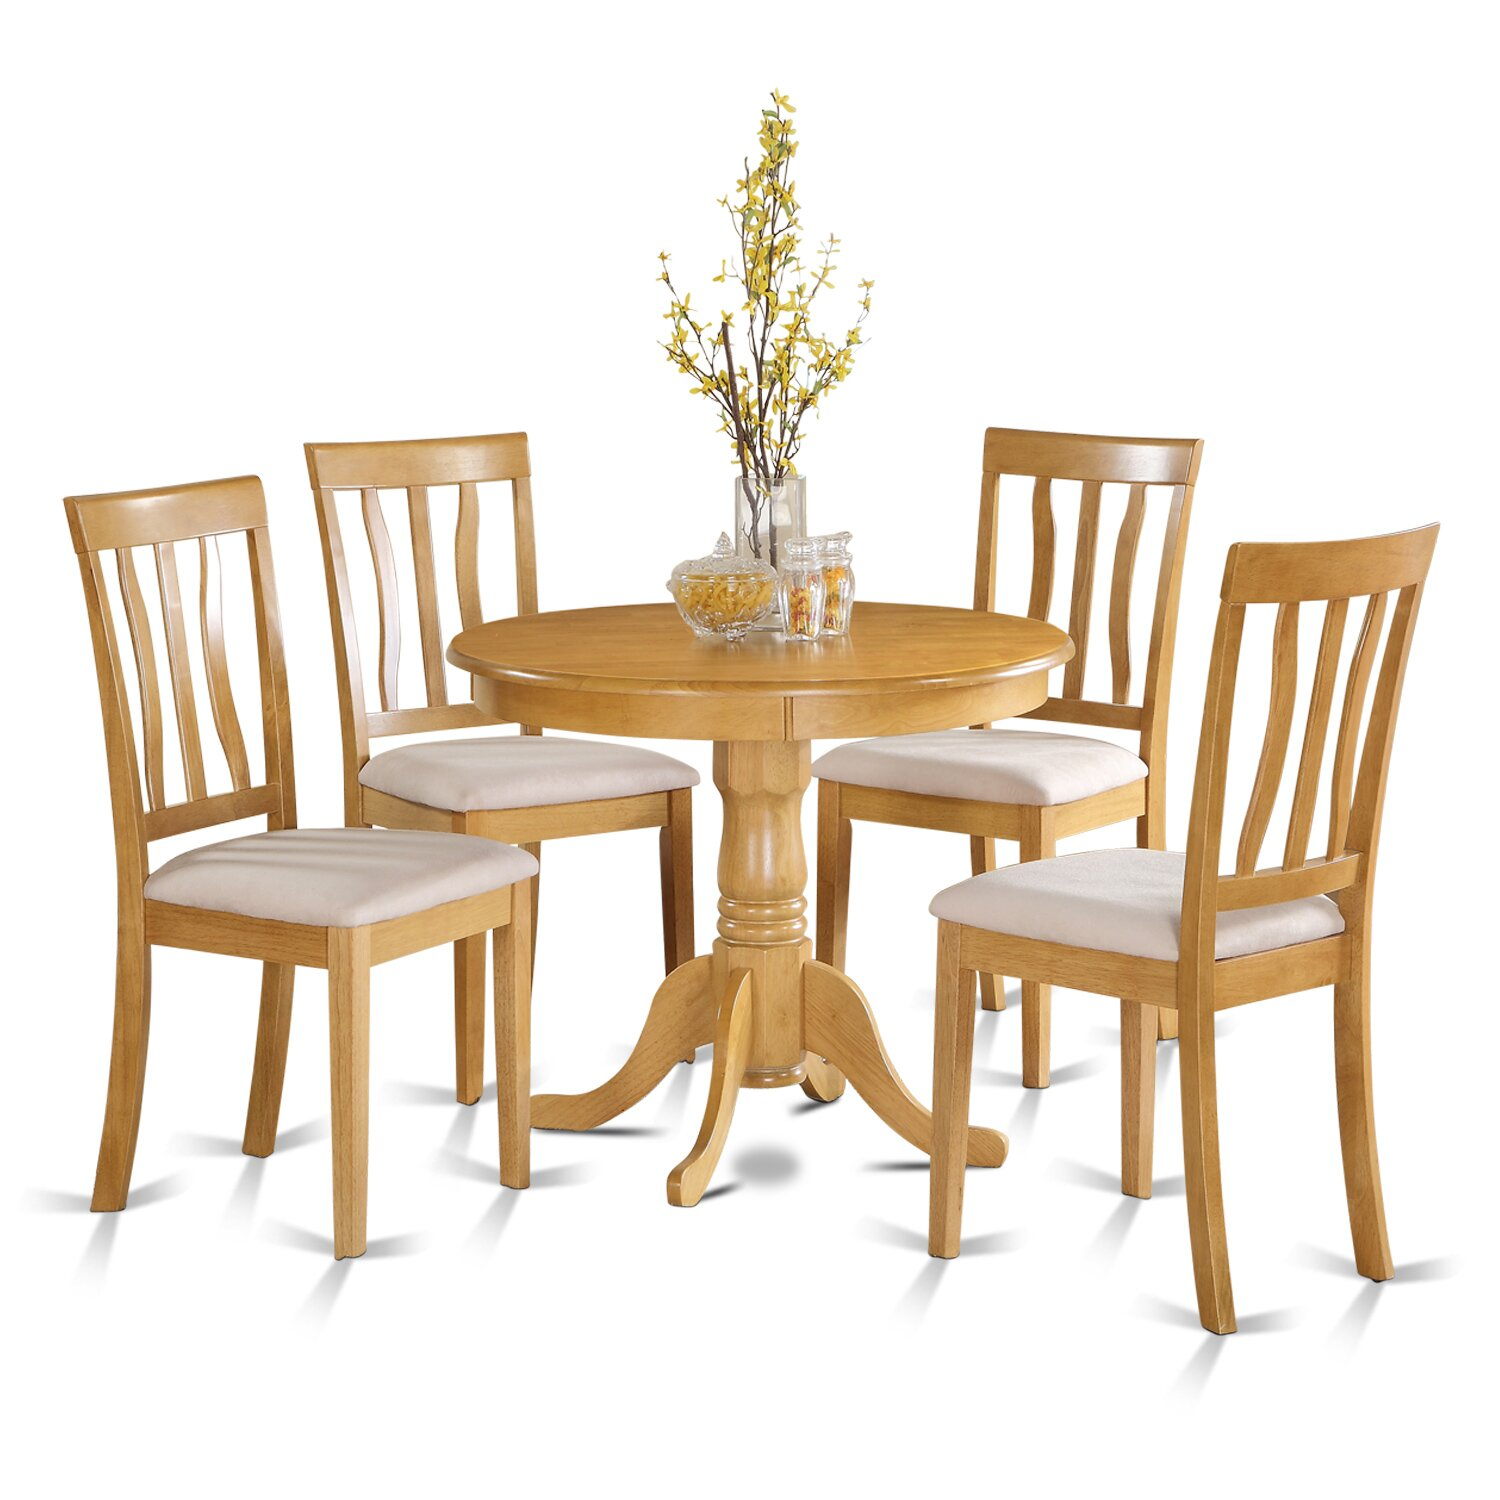 Wooden importers 5 piece dining set reviews wayfair for 5 piece dining set